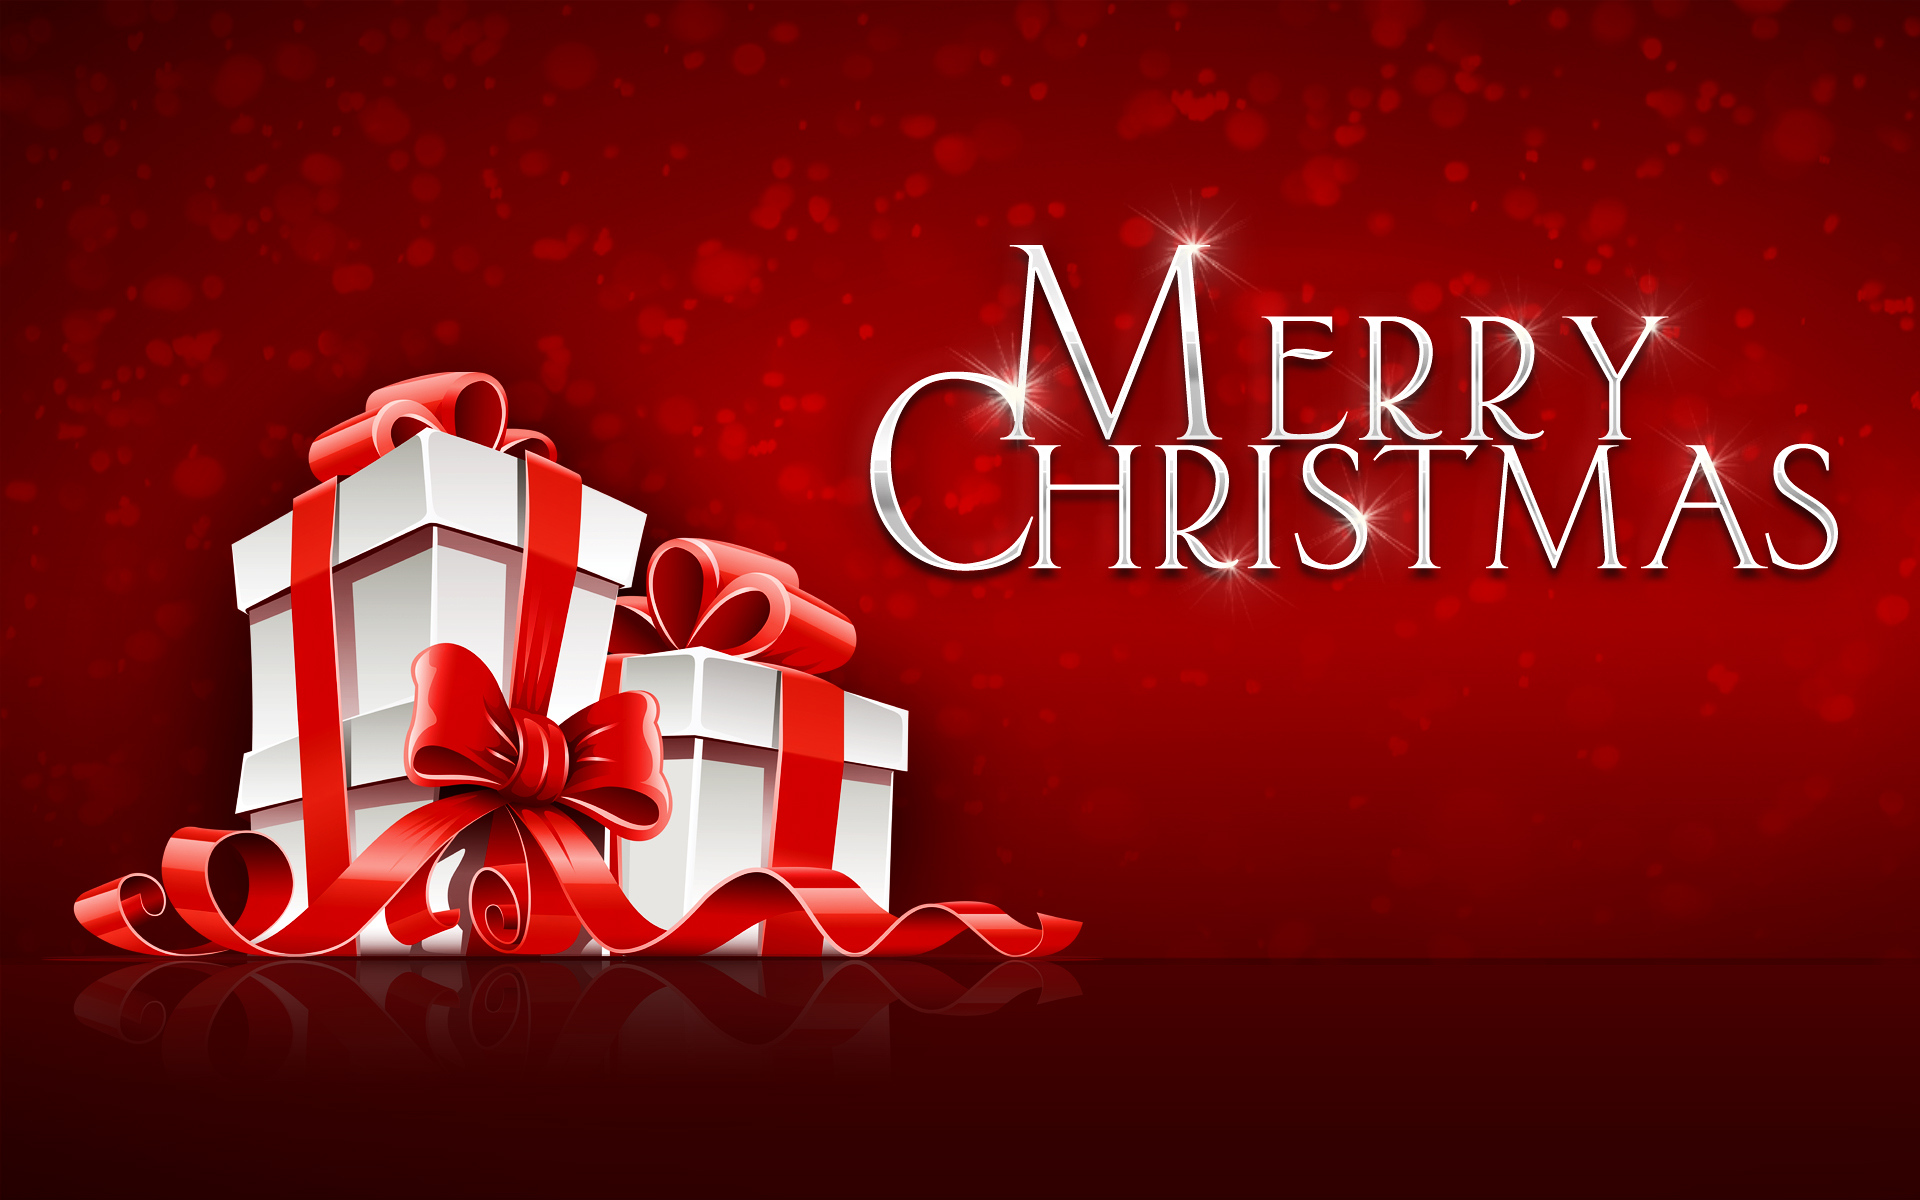 merry christmas wrapped gifts red background wallpaper